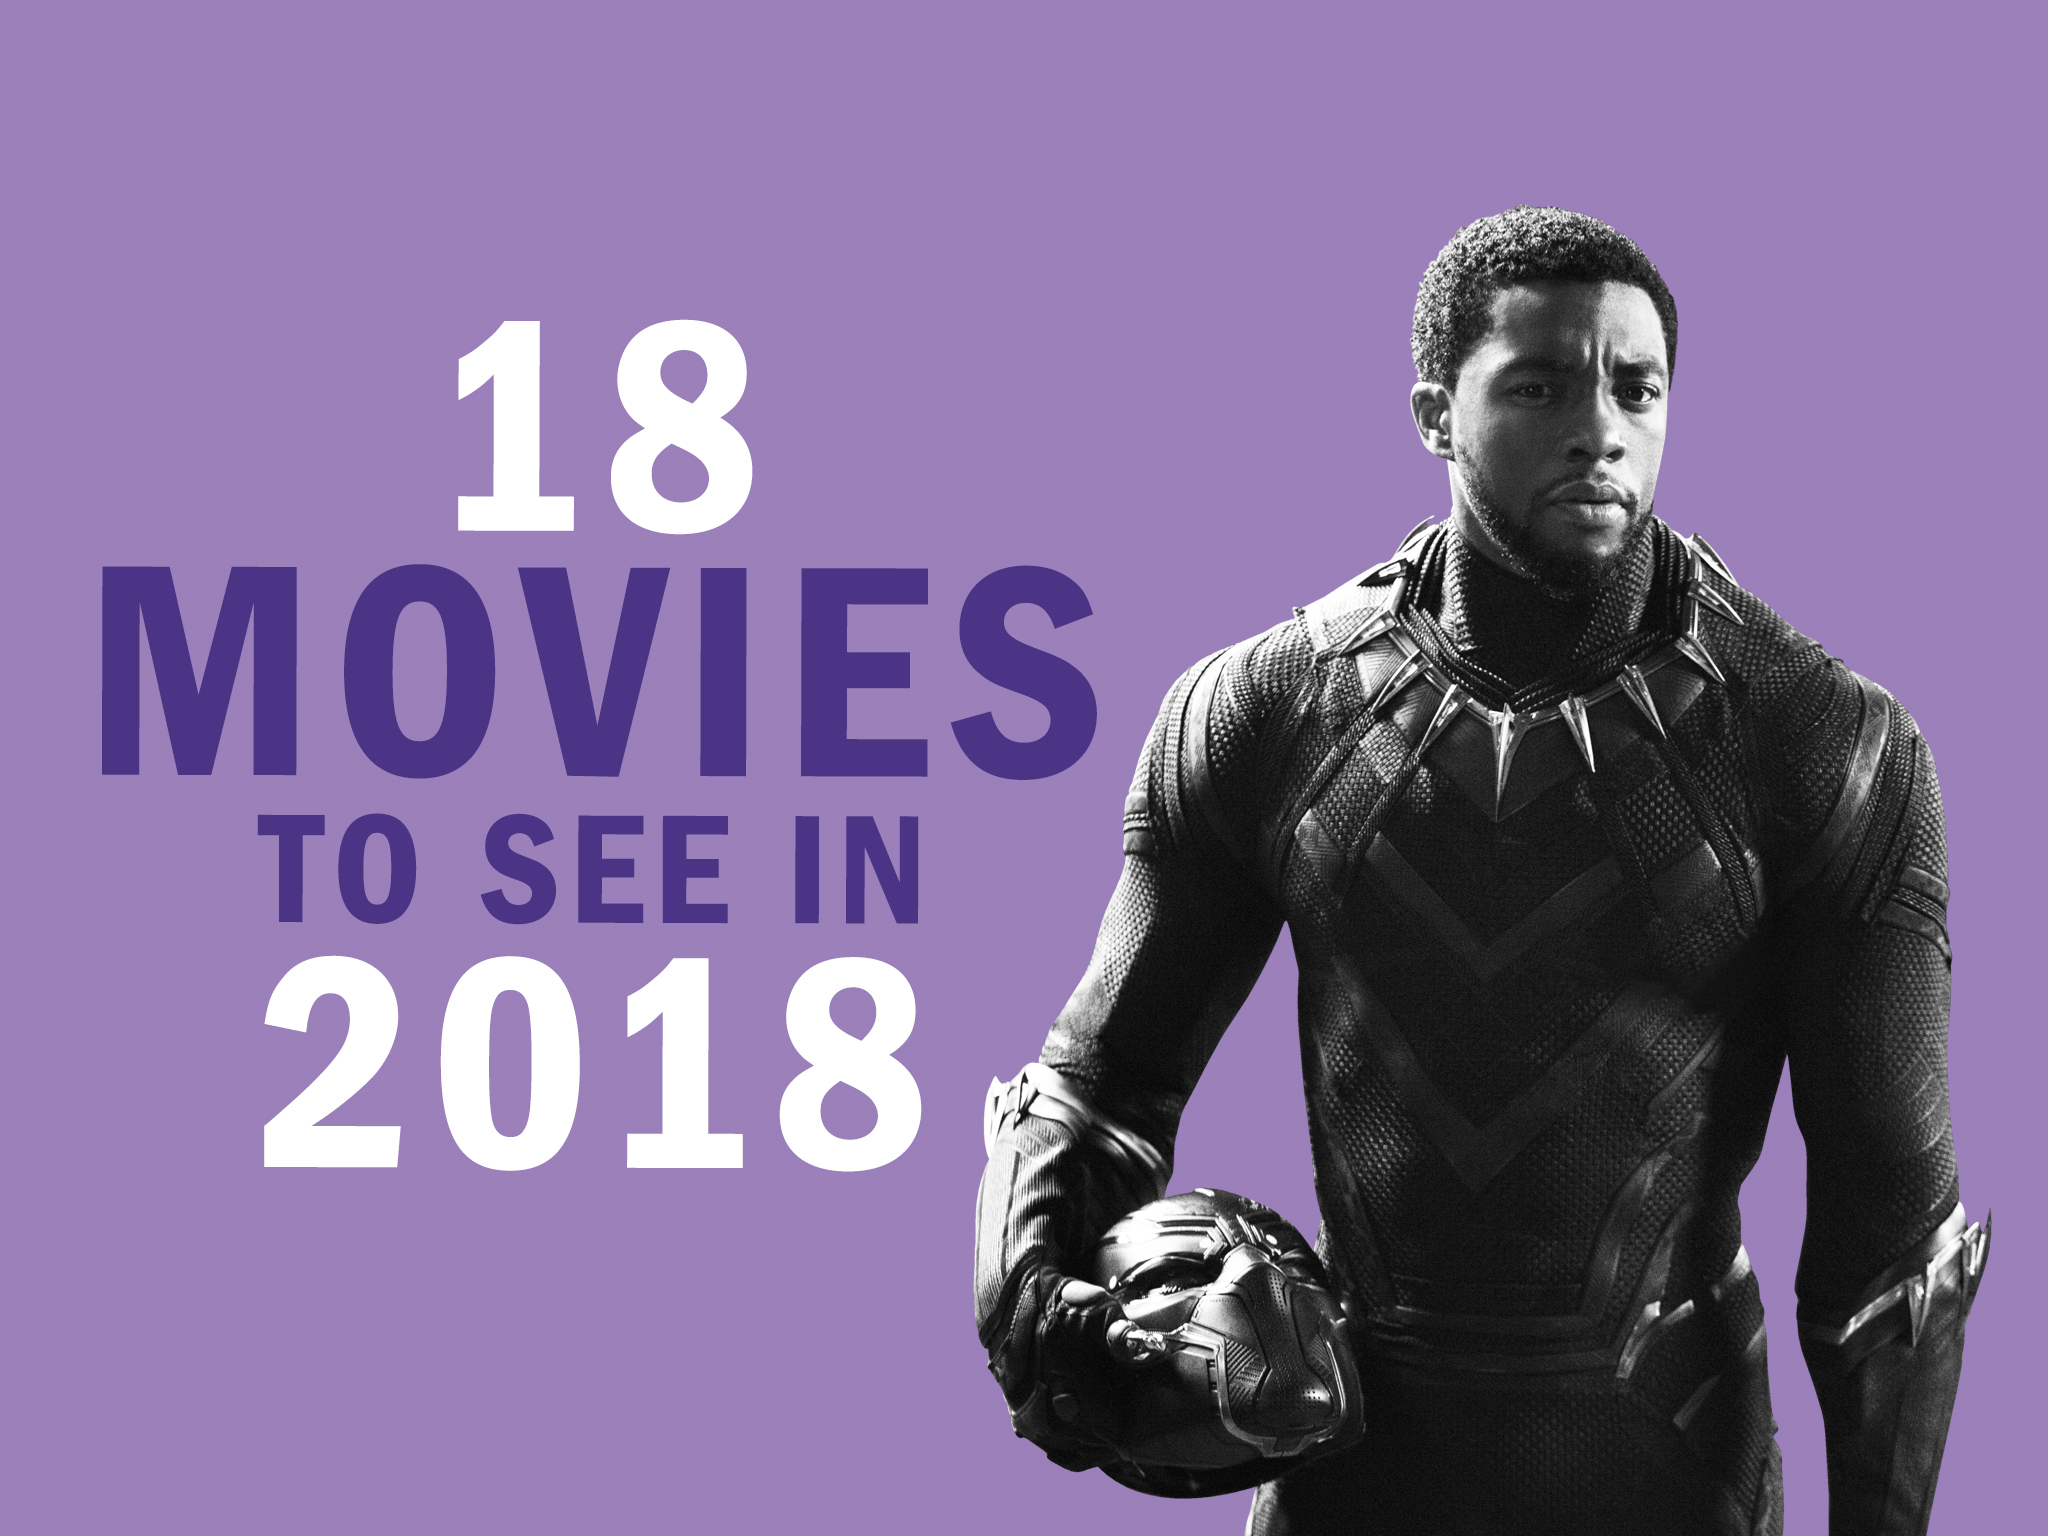 The 2018 movies we can't wait to see